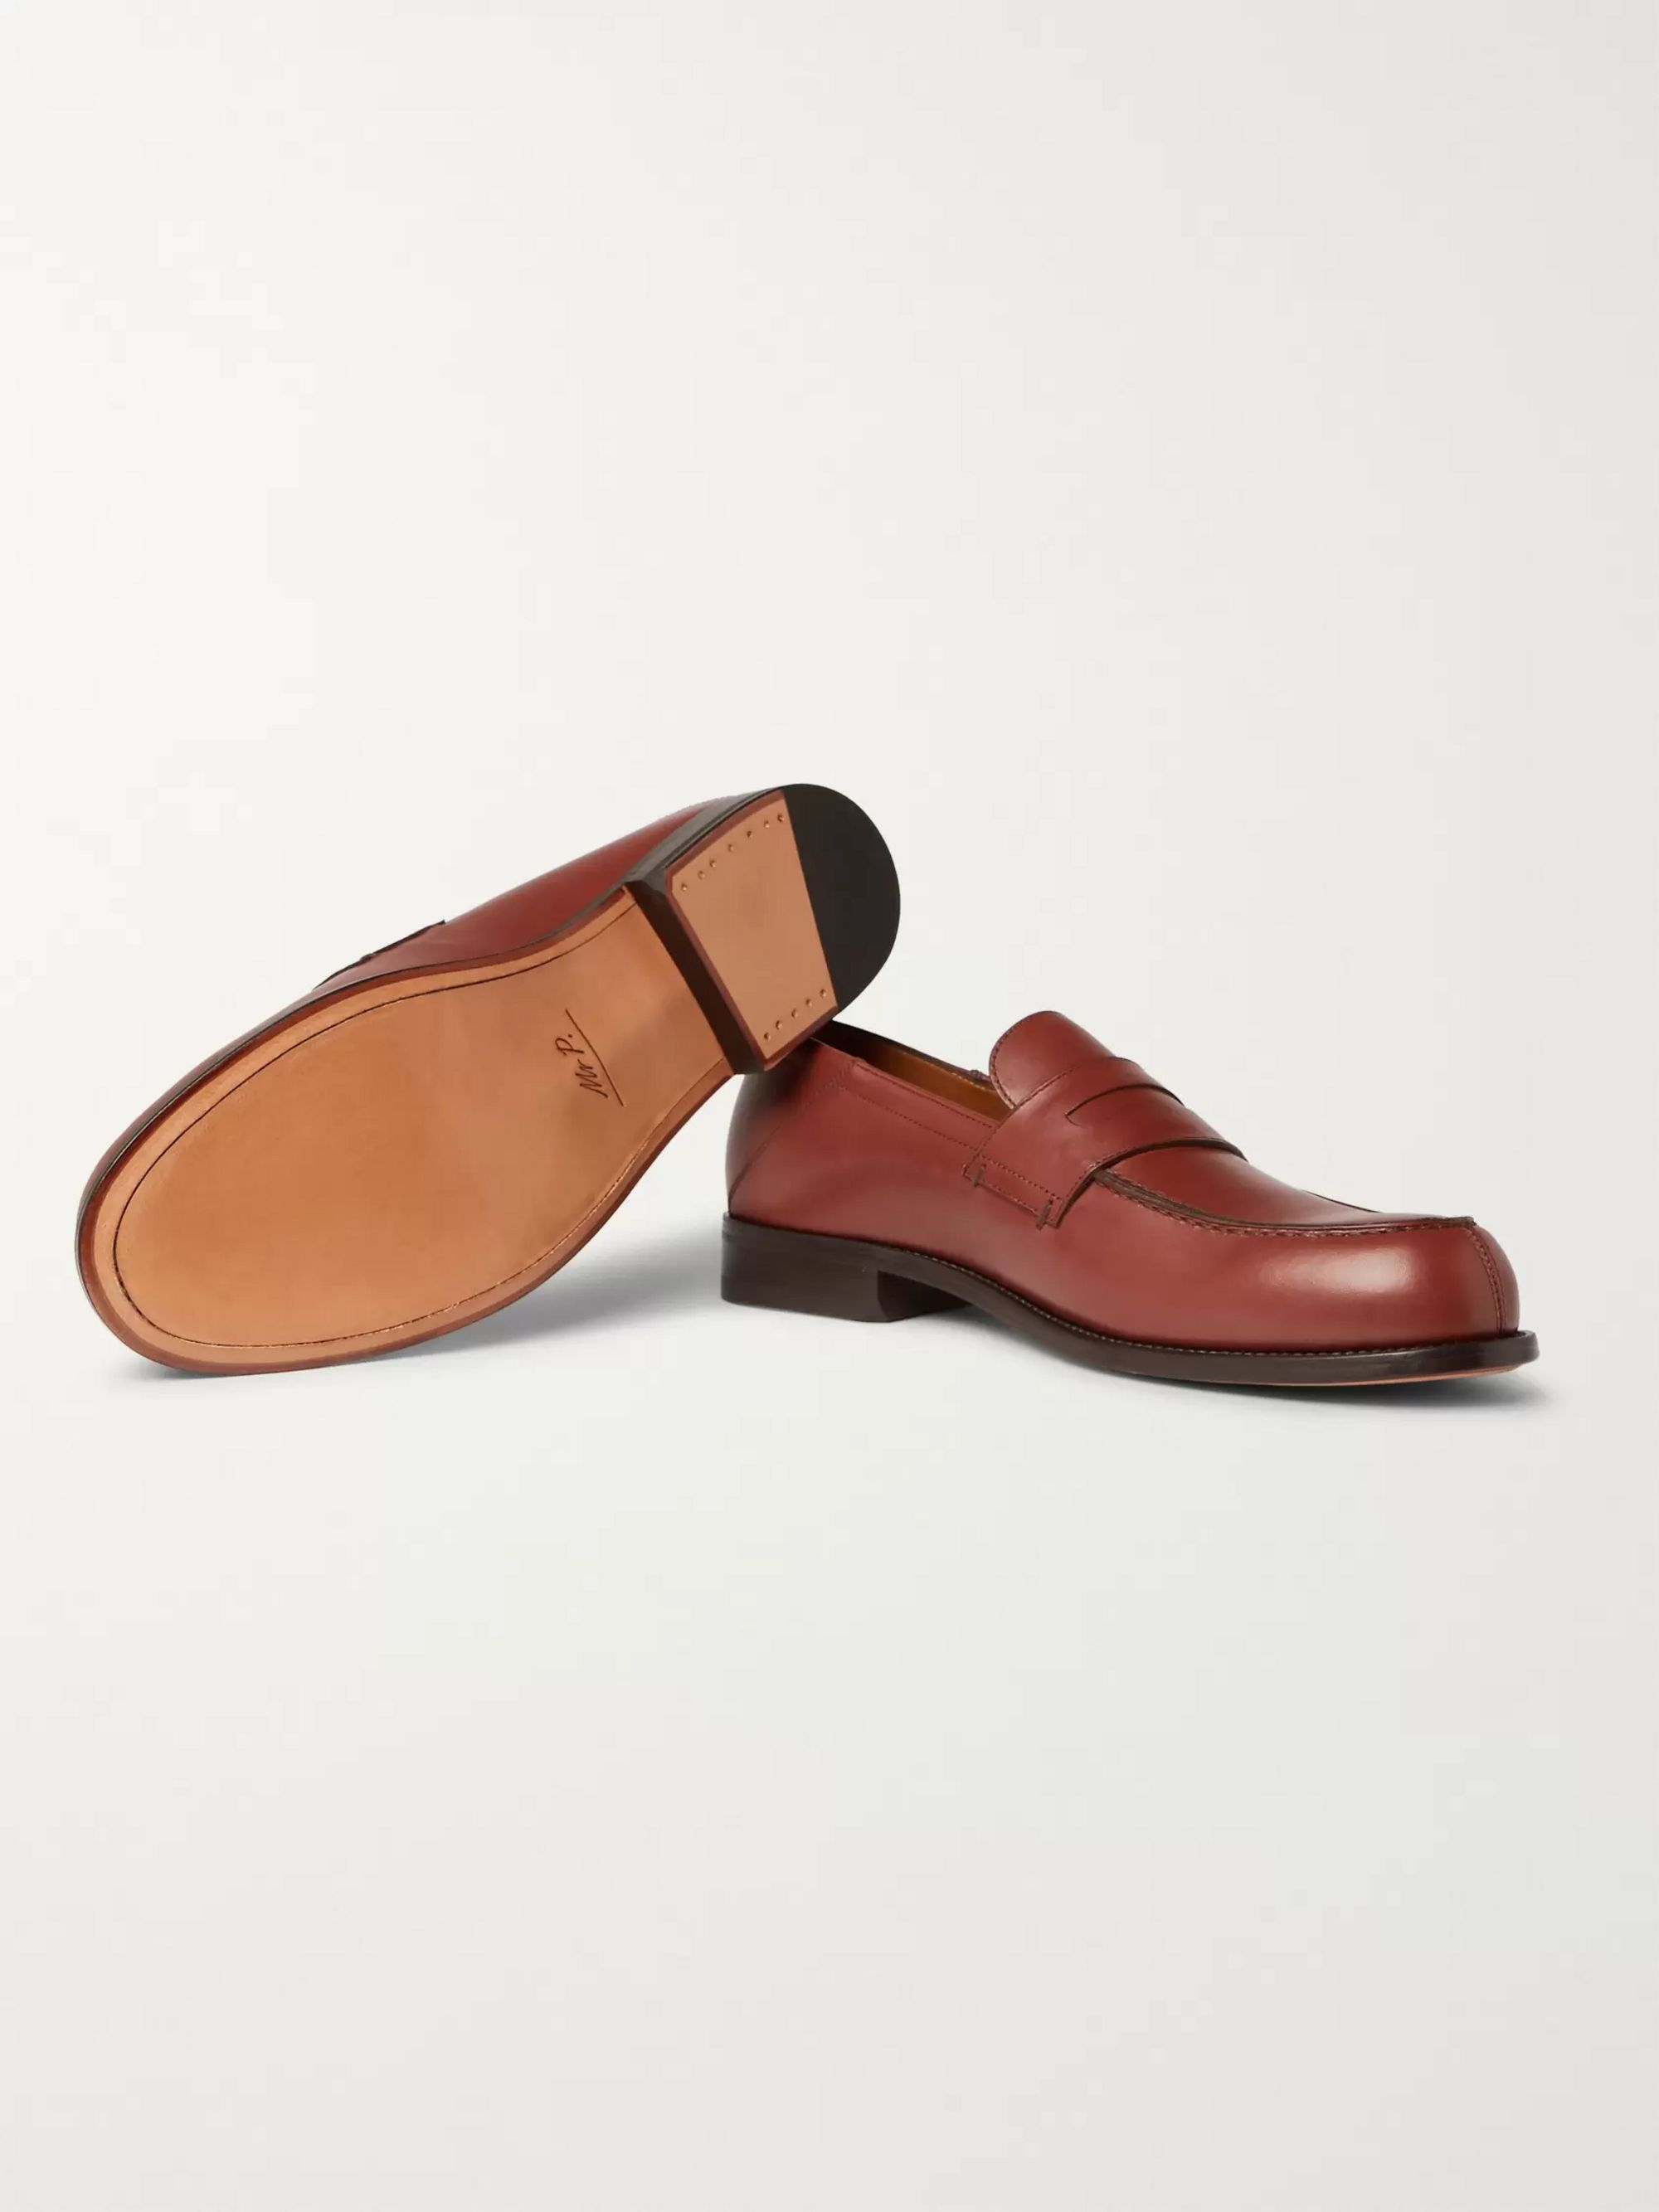 Mr P. Dennis Collapsible-Heel Leather Loafers